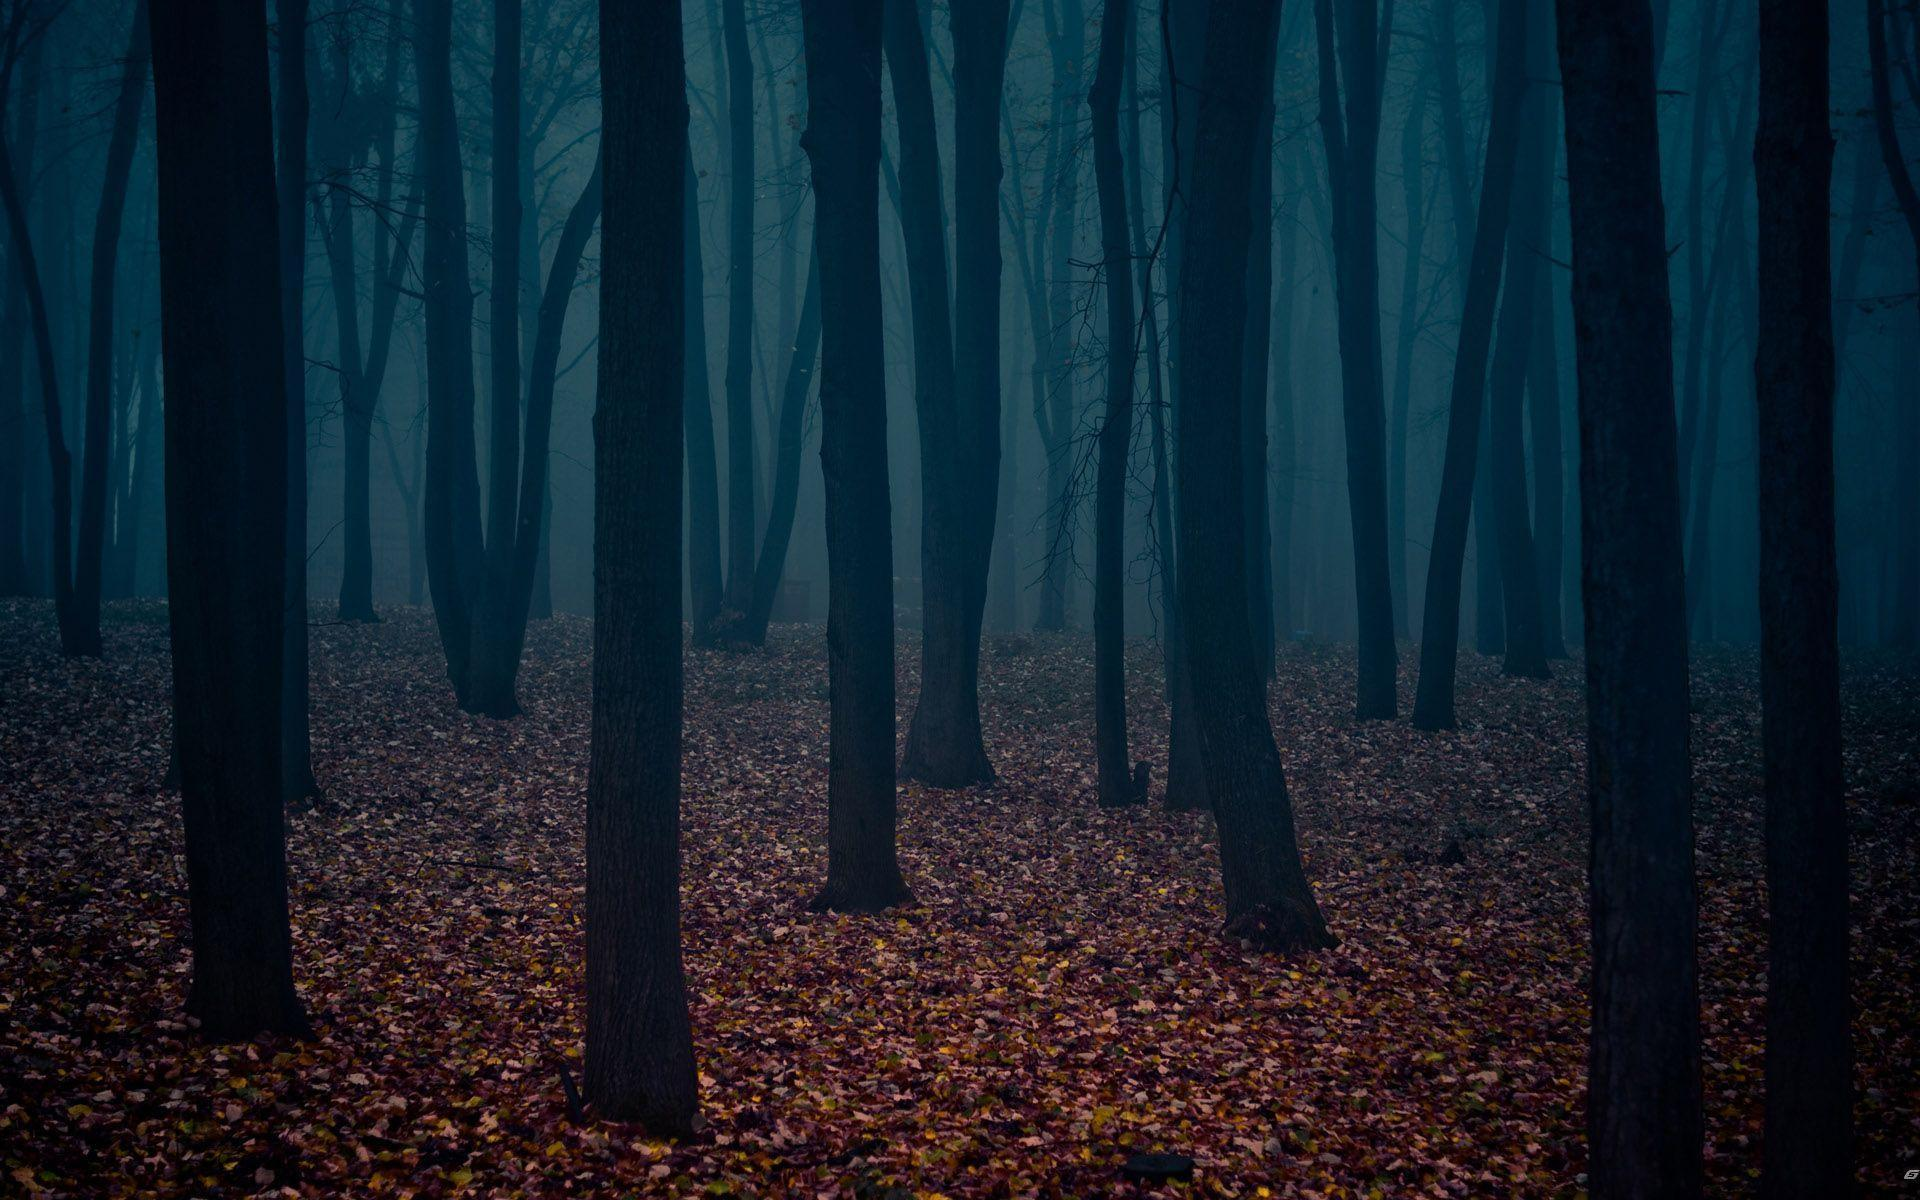 Black Forest Wallpapers - Wallpaper Cave Dark Forest Wallpapers Widescreen